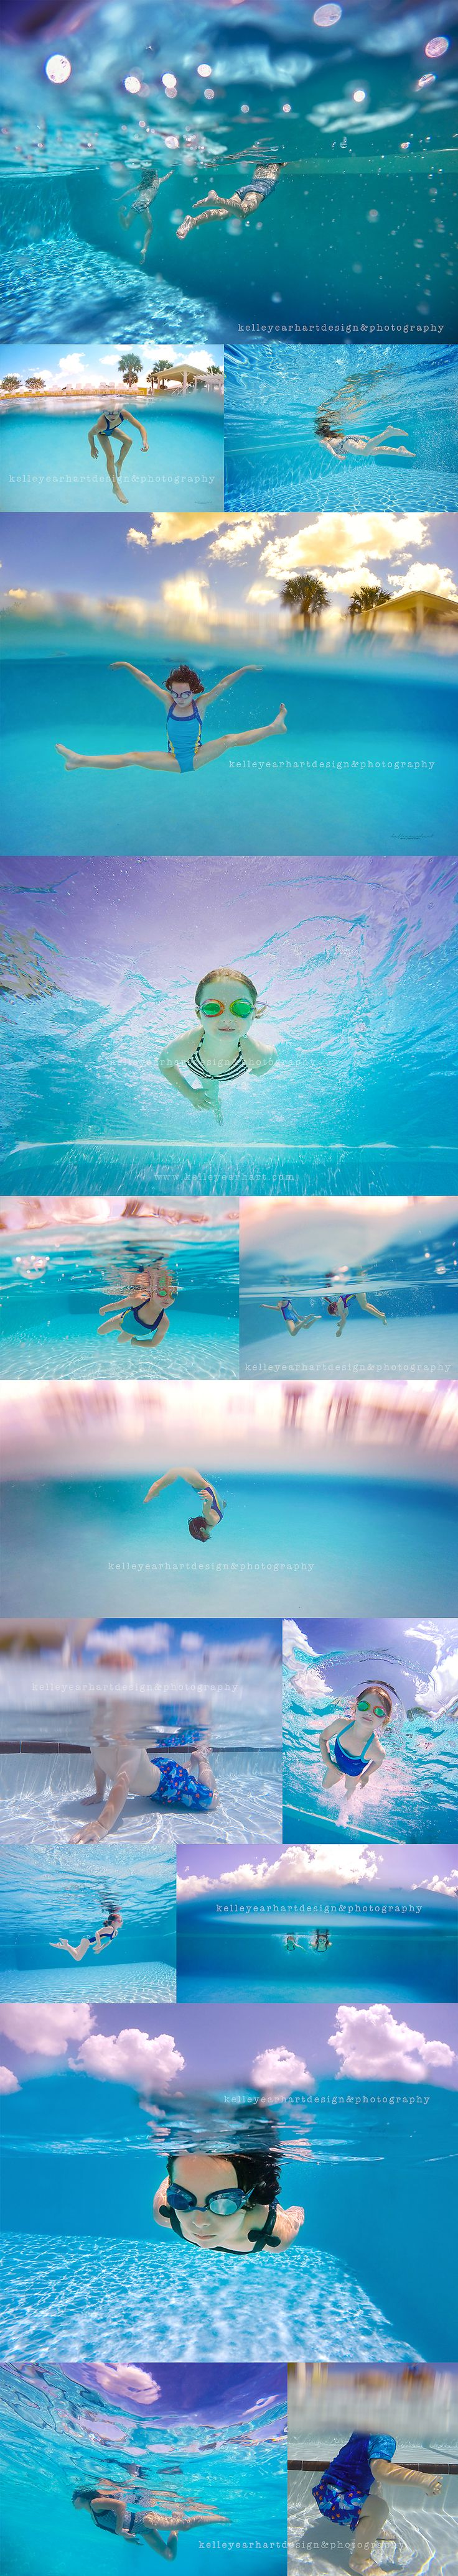 Underwater Photography. Sharing a few photos from our recent vacation. As you ...